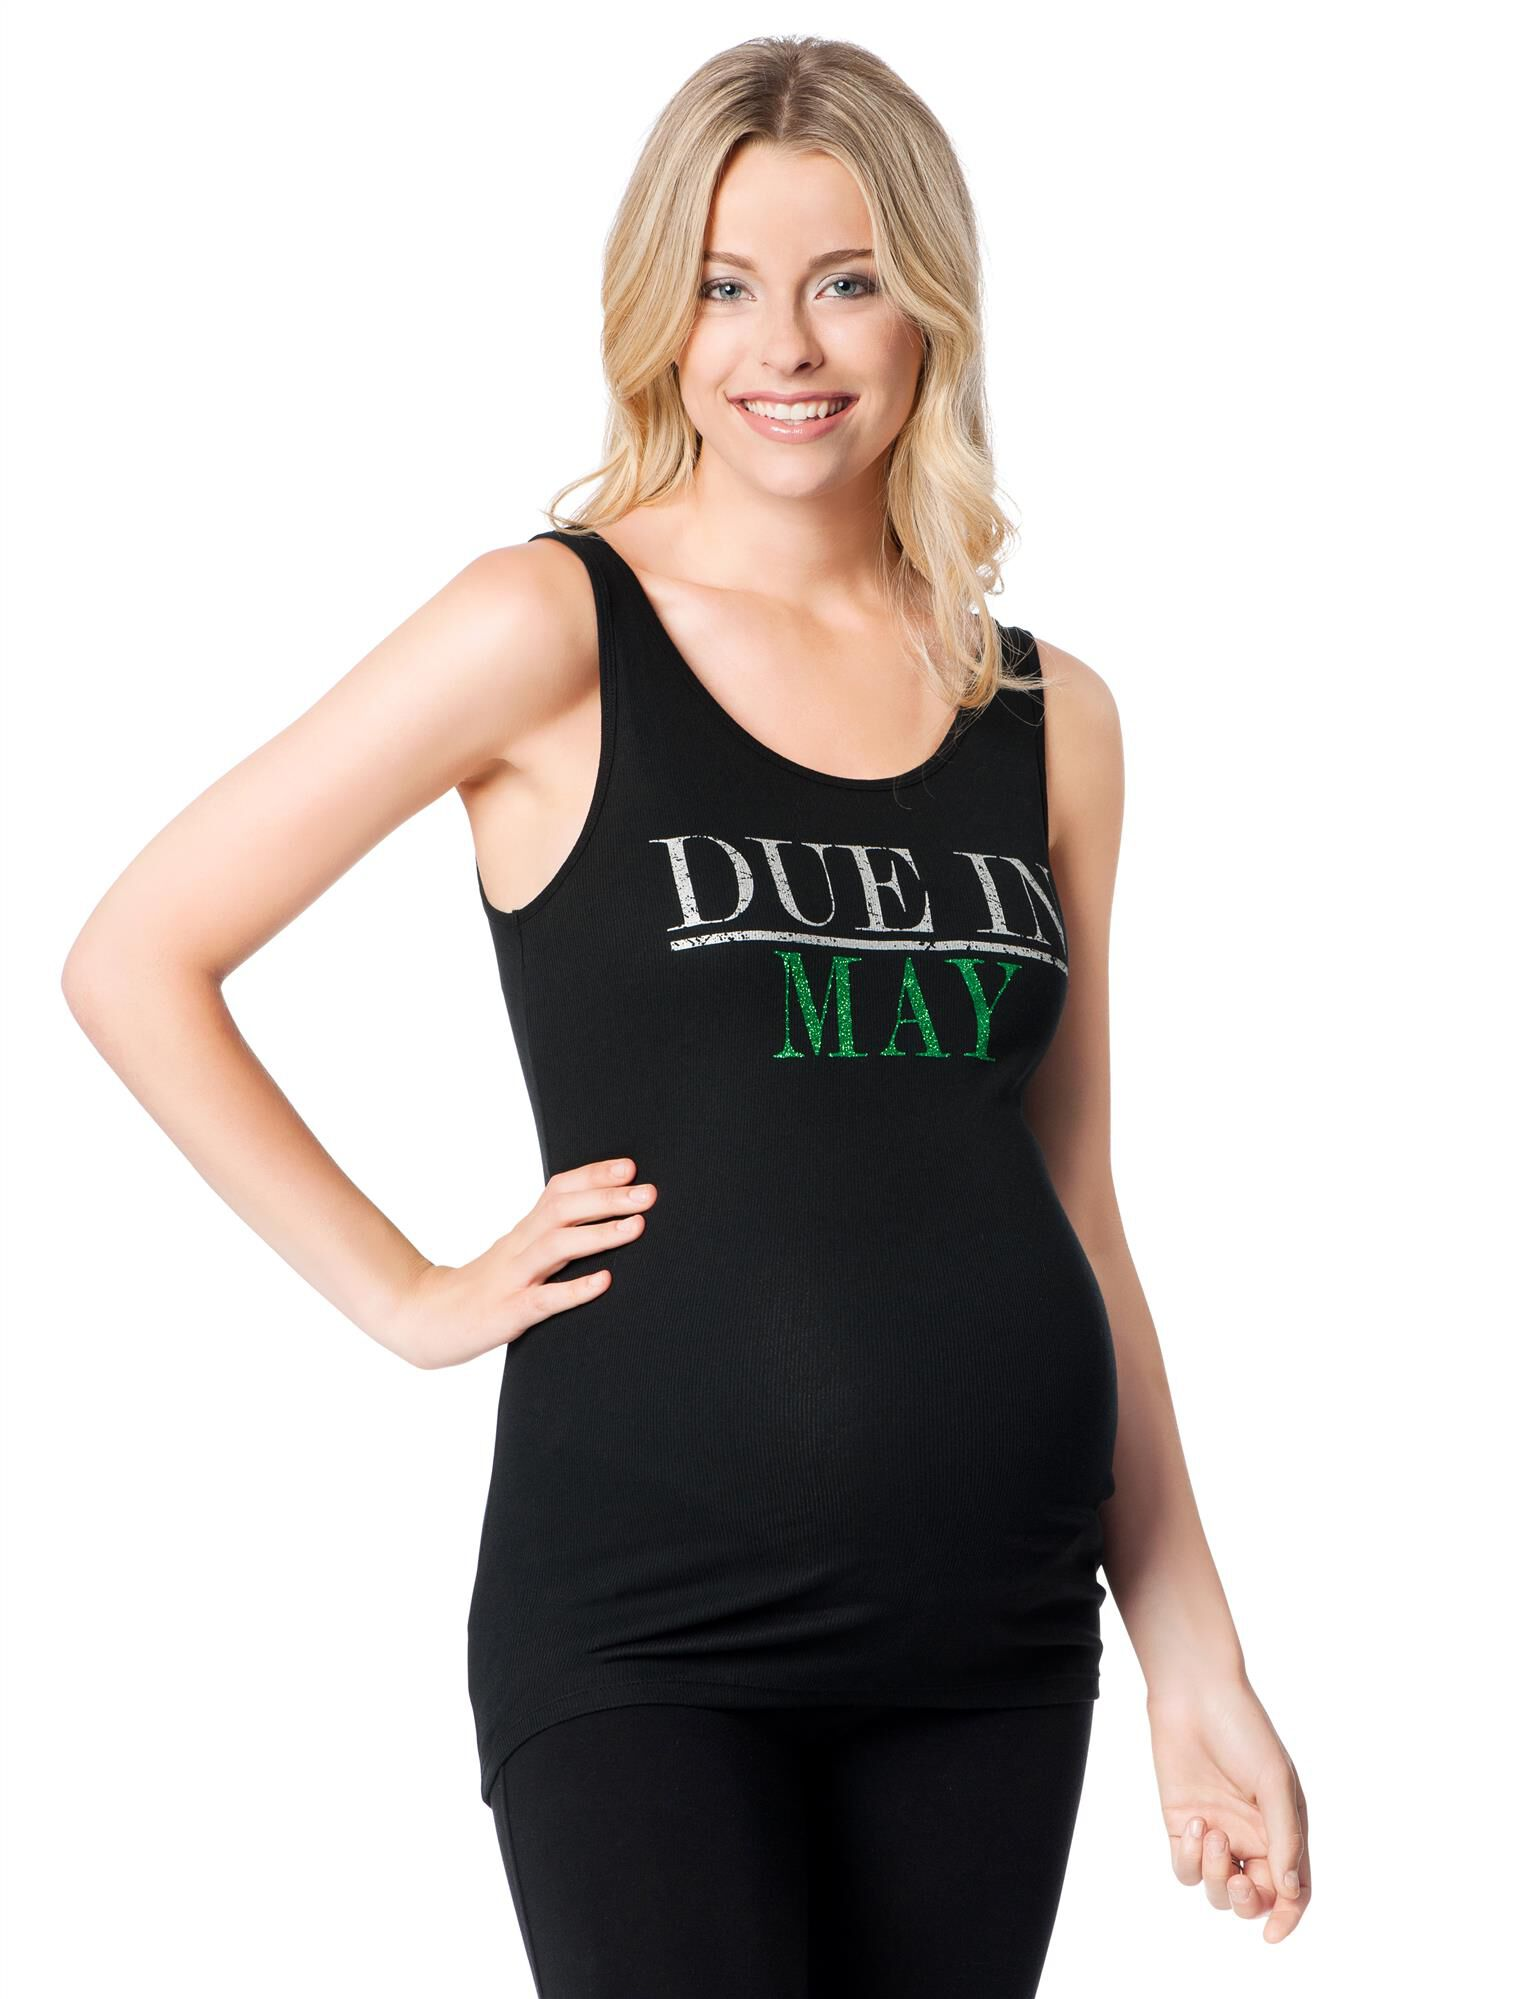 Due in May Maternity Graphic Tank Top